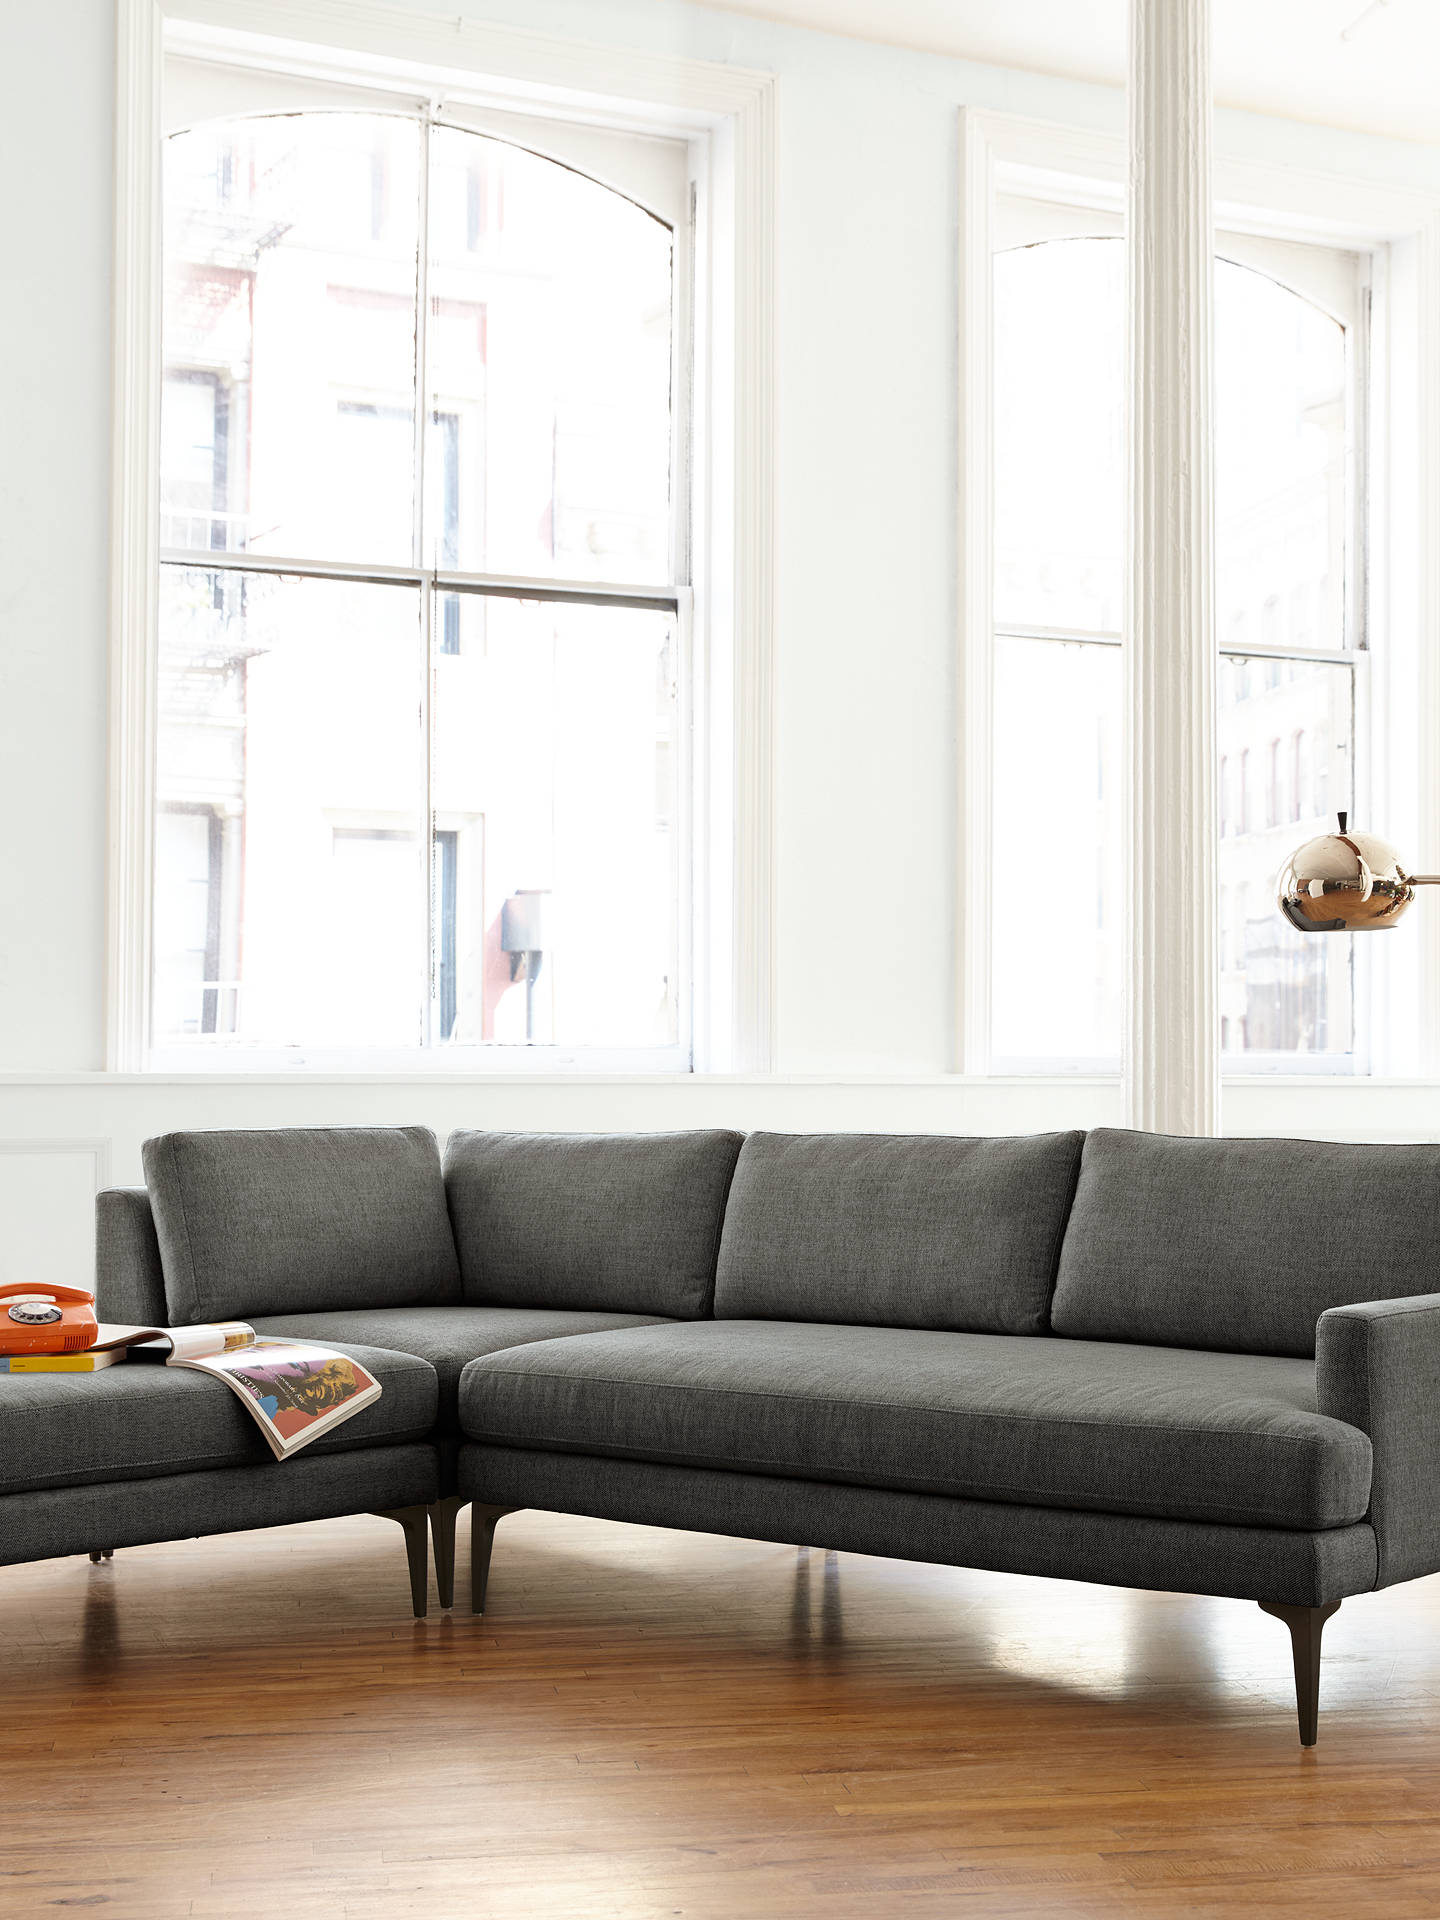 Buy west elm Andes Large 3 Seater LHF Sectional Sofa, Granite Twill Online at johnlewis.com